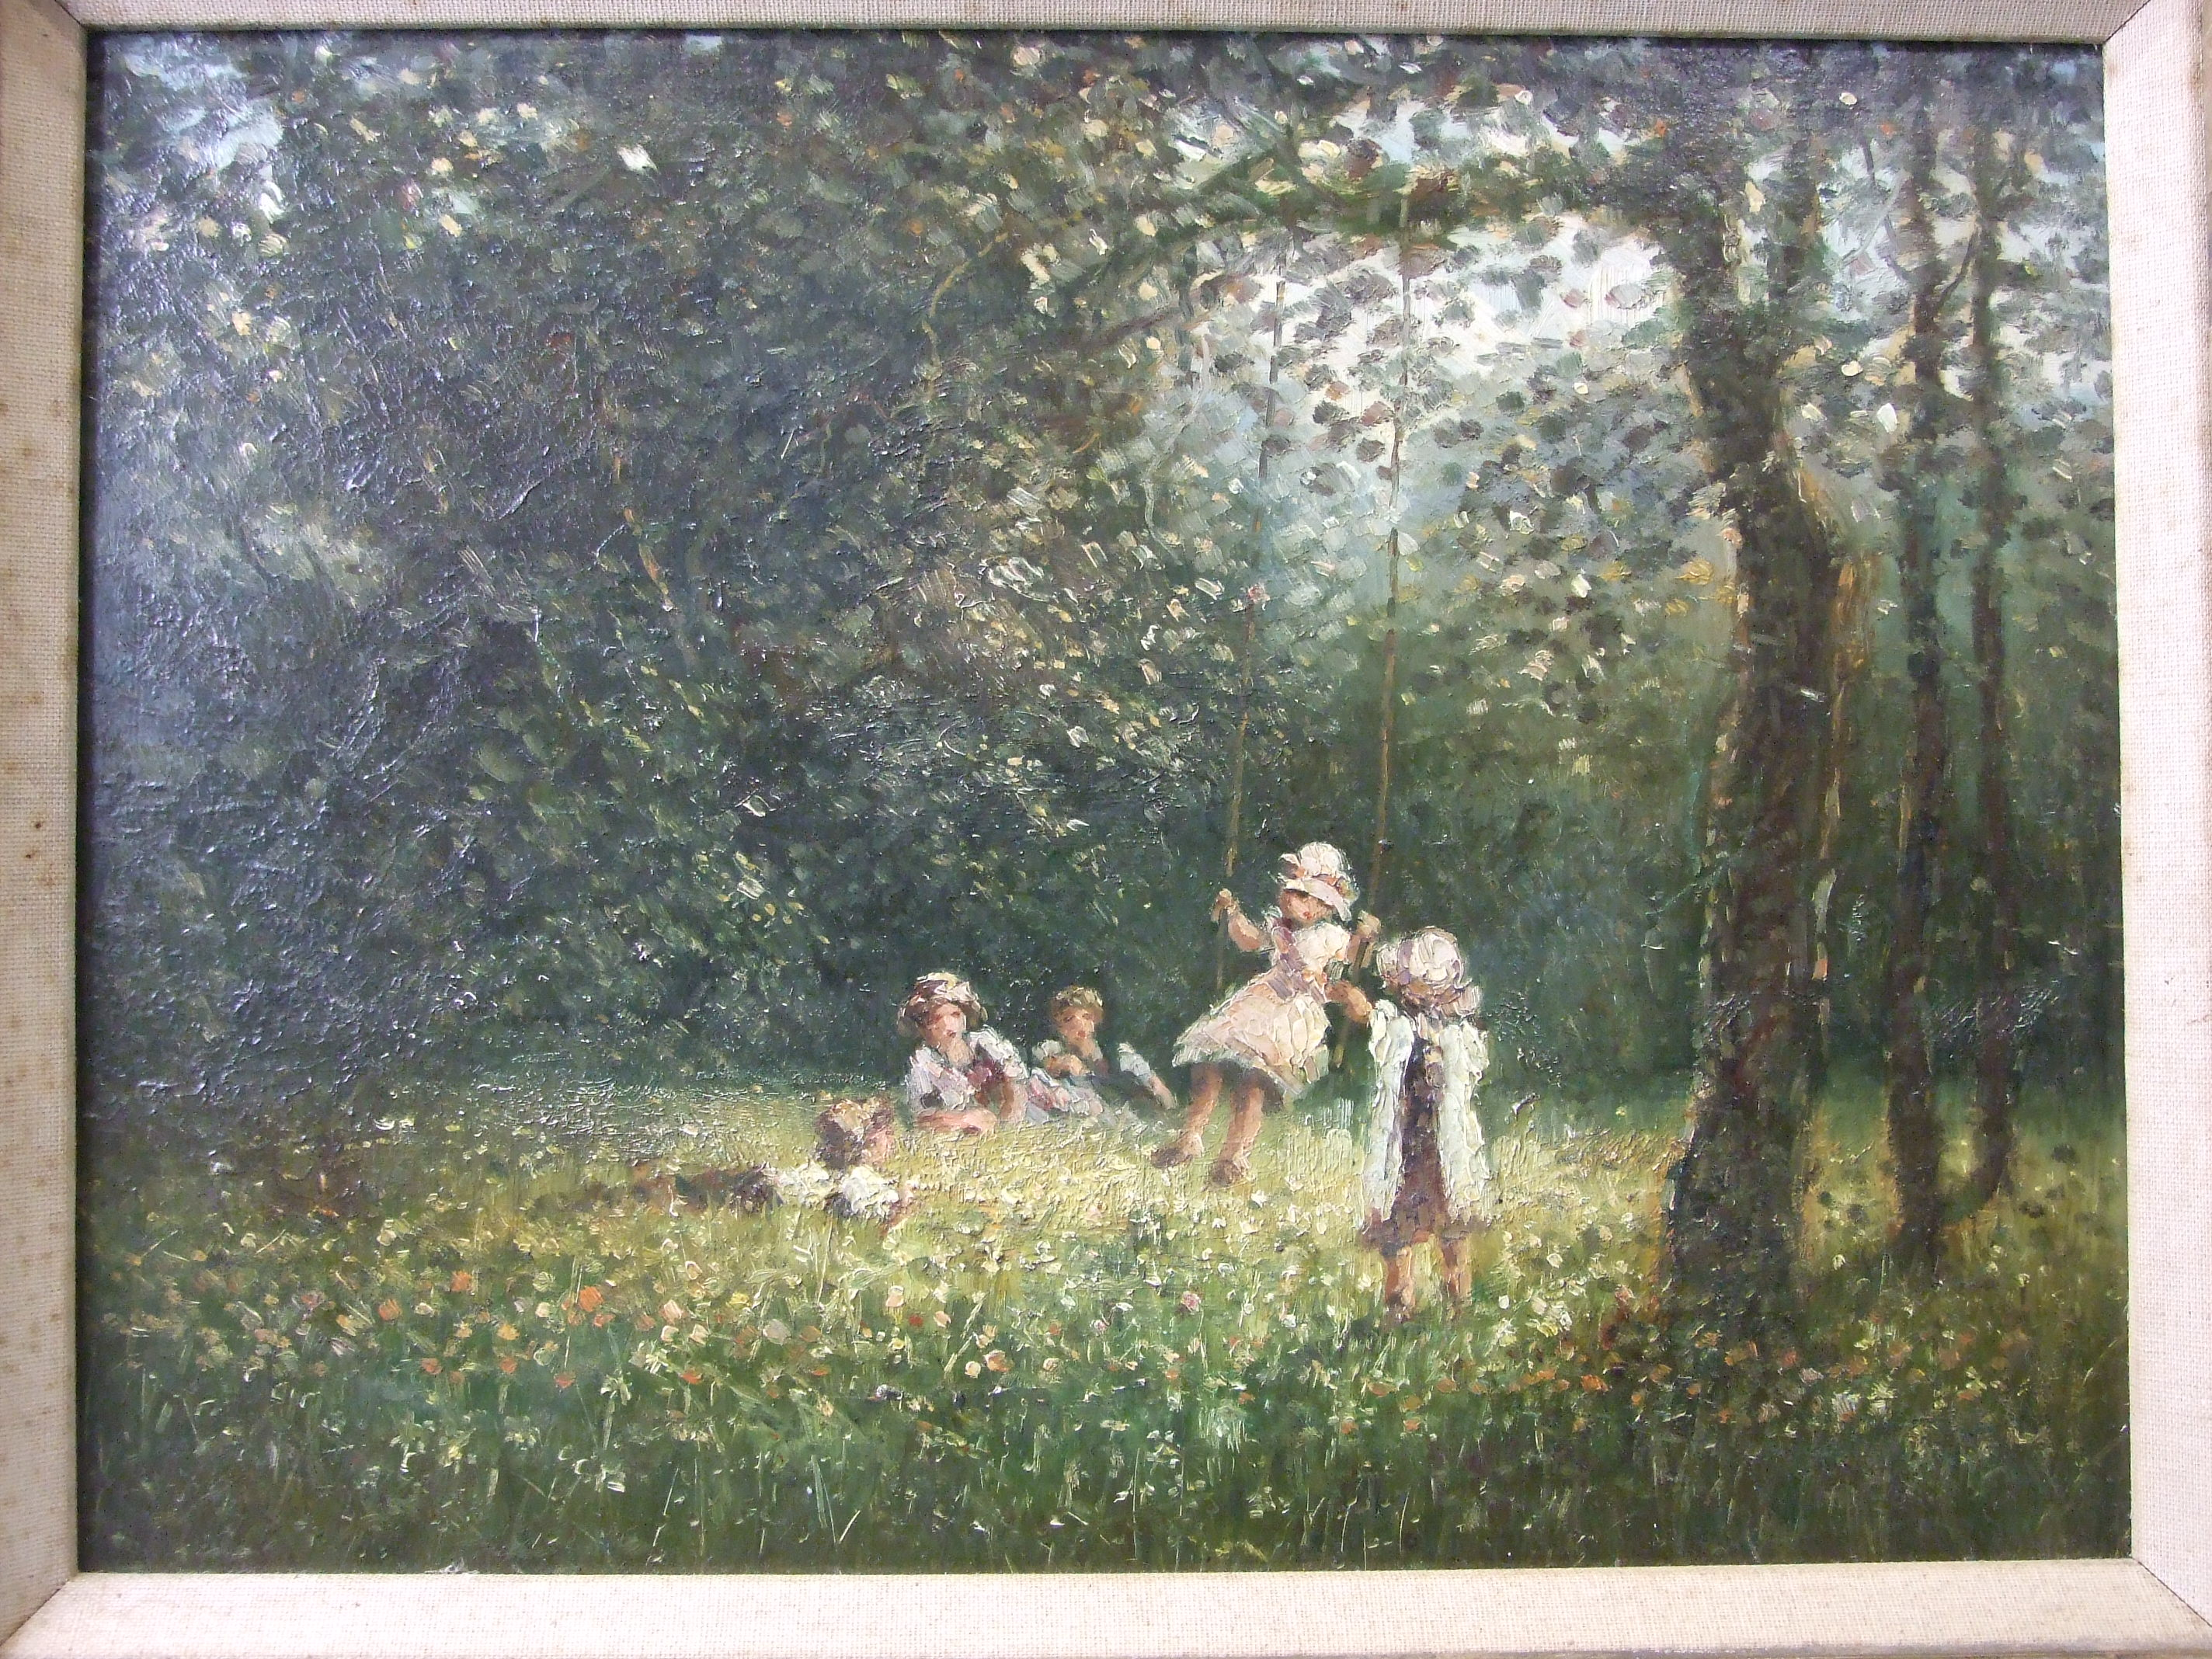 20th century English School CHILDREN PLAYING ON A WOODLAND SWING Unsigned oil on board, 29 x 40cm. - Image 3 of 3